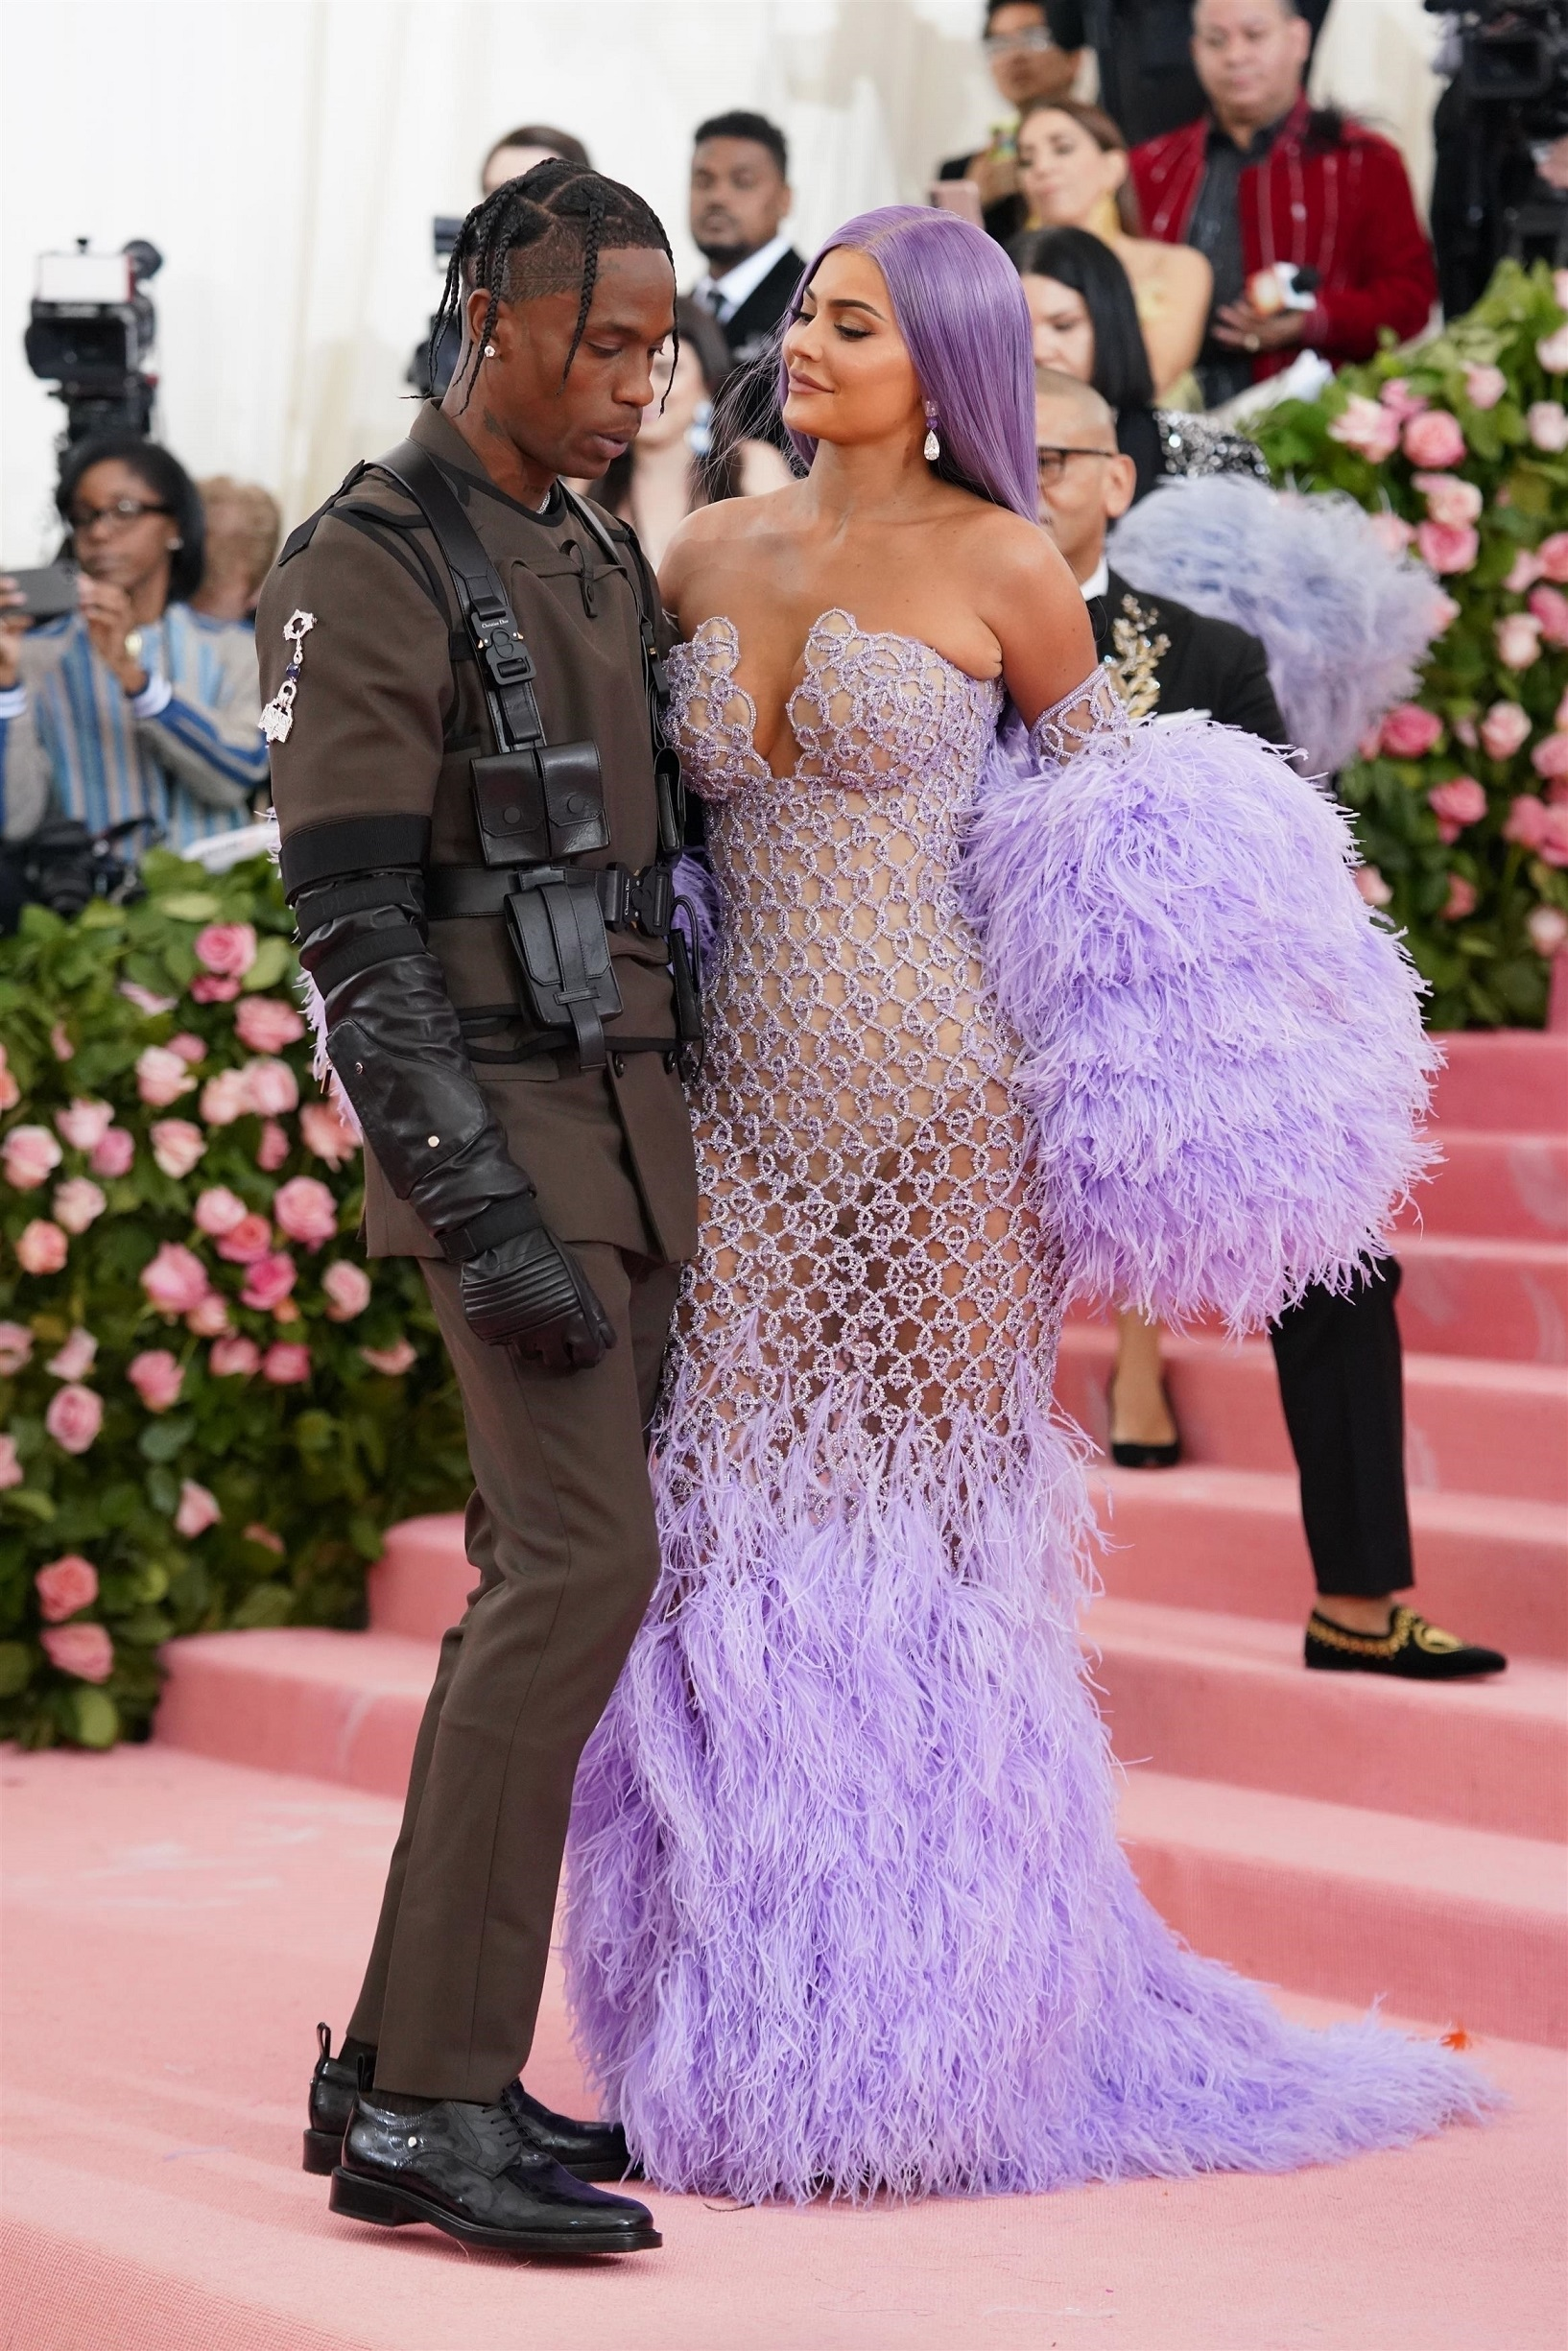 Celebrities look stunning as they step out for the Met Gala Travis Scott, Kylie Jenner